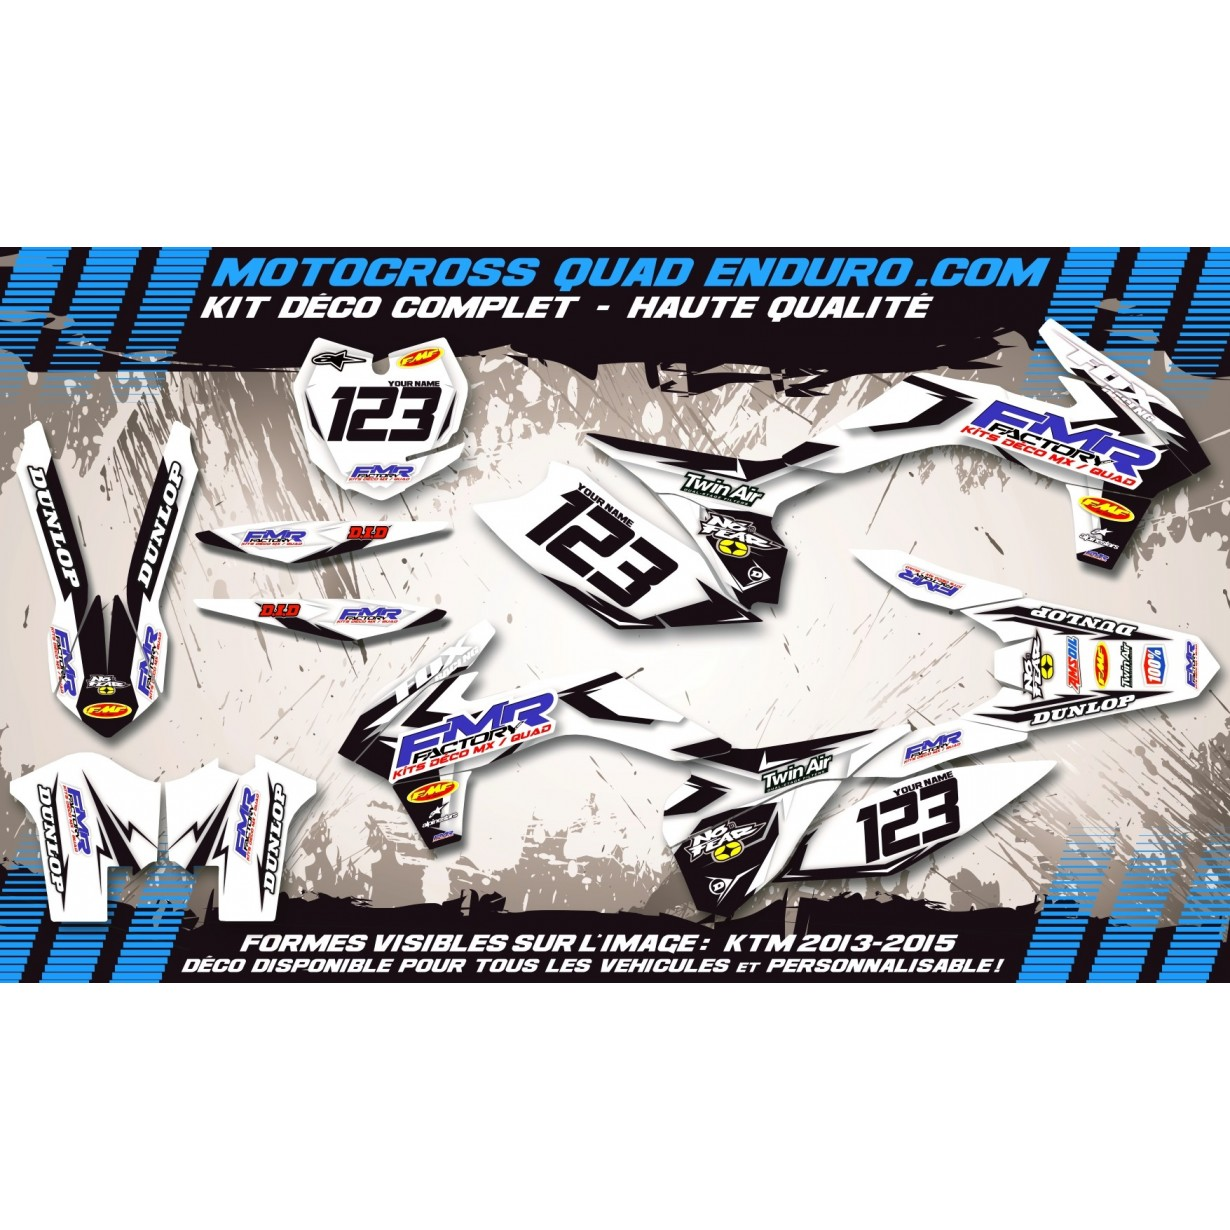 KIT DÉCO Perso TE-TC 450 / 510 08-10 Fmr factory WT Edition MA13WT